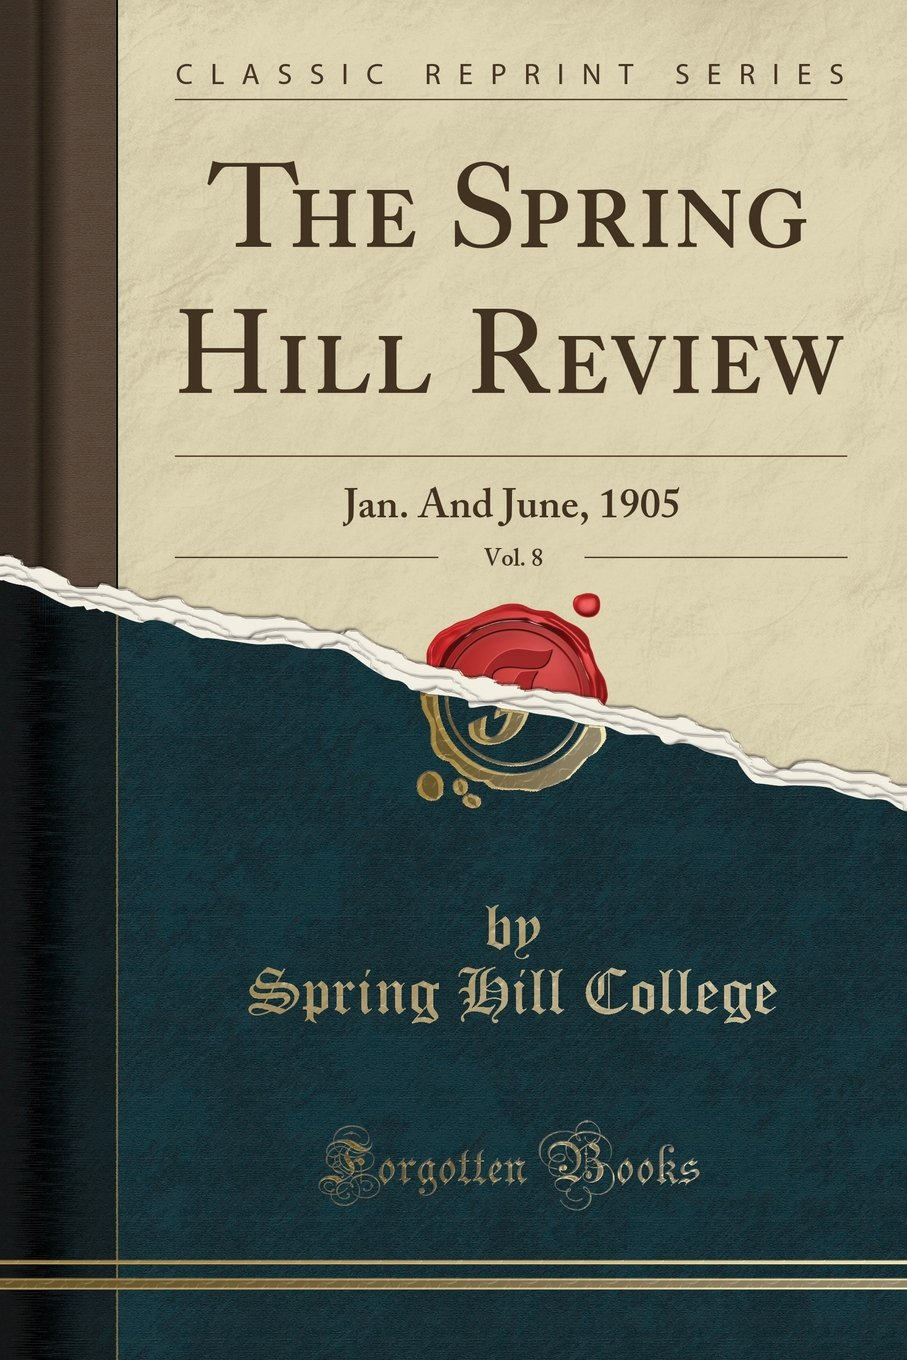 The Spring Hill Review, Vol. 8: Jan. And June, 1905 (Classic Reprint) ebook